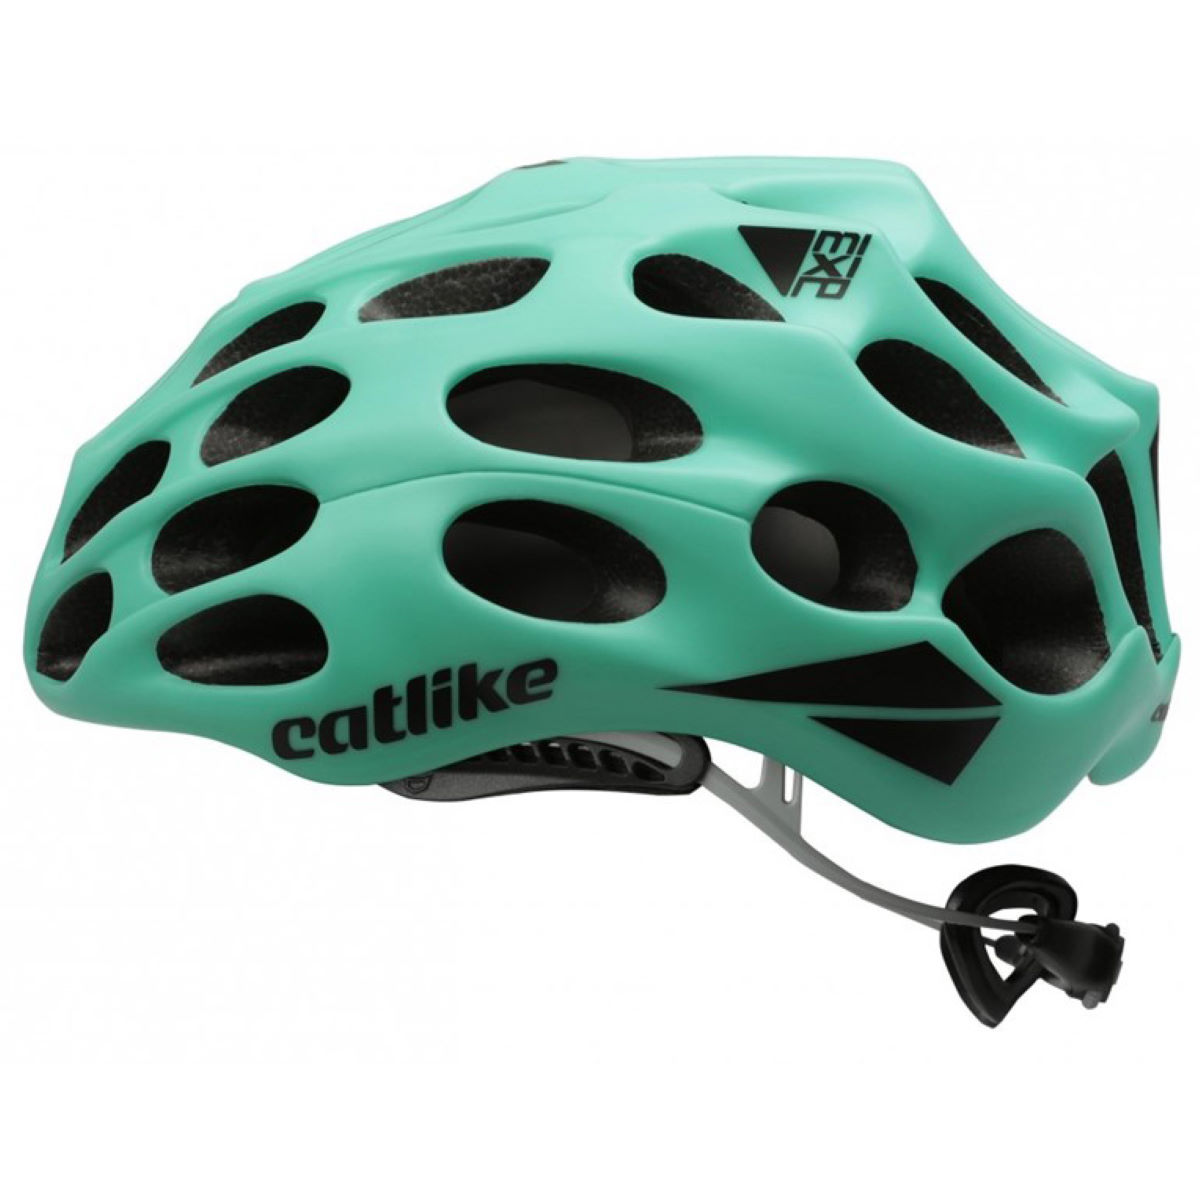 Casque de route Catlike Mixino - S Water Green Matt Casques de route